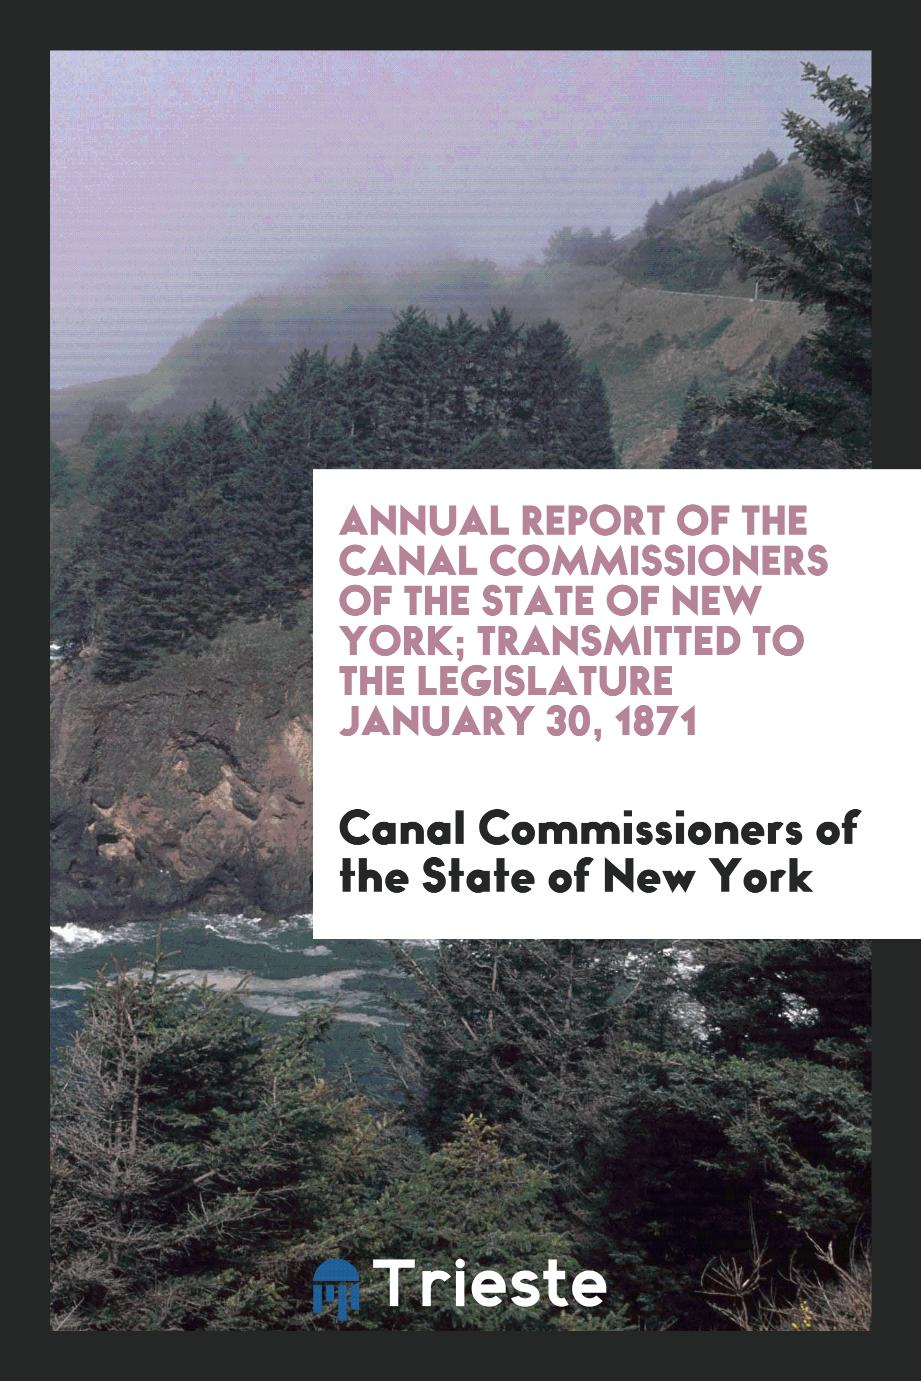 Annual Report of the Canal Commissioners of the State of New York; Transmitted to the Legislature January 30, 1871